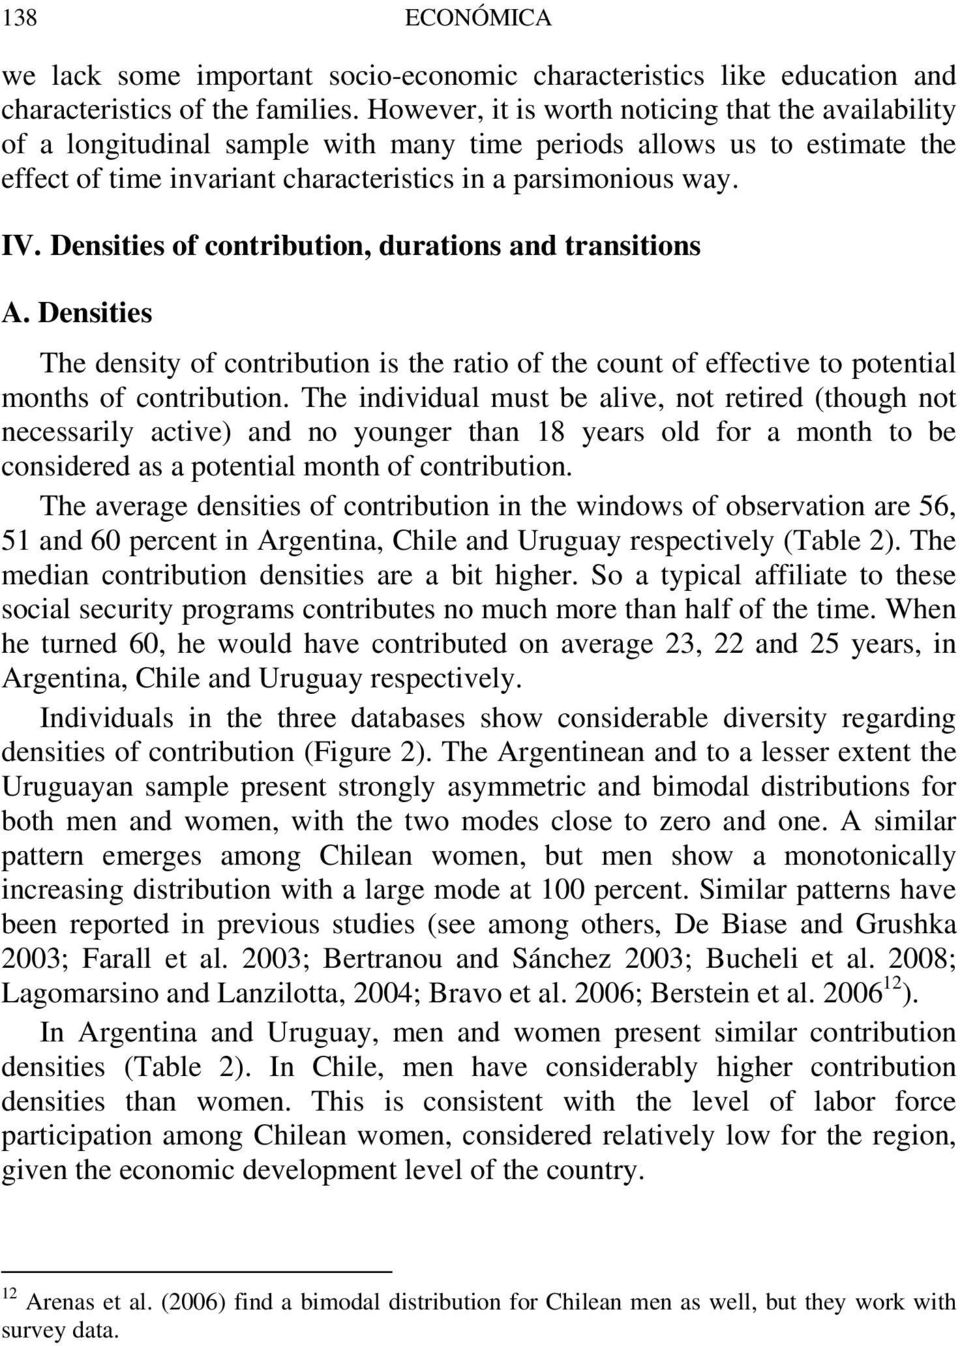 Densities of contribution, durations and transitions A. Densities The density of contribution is the ratio of the count of effective to potential months of contribution.